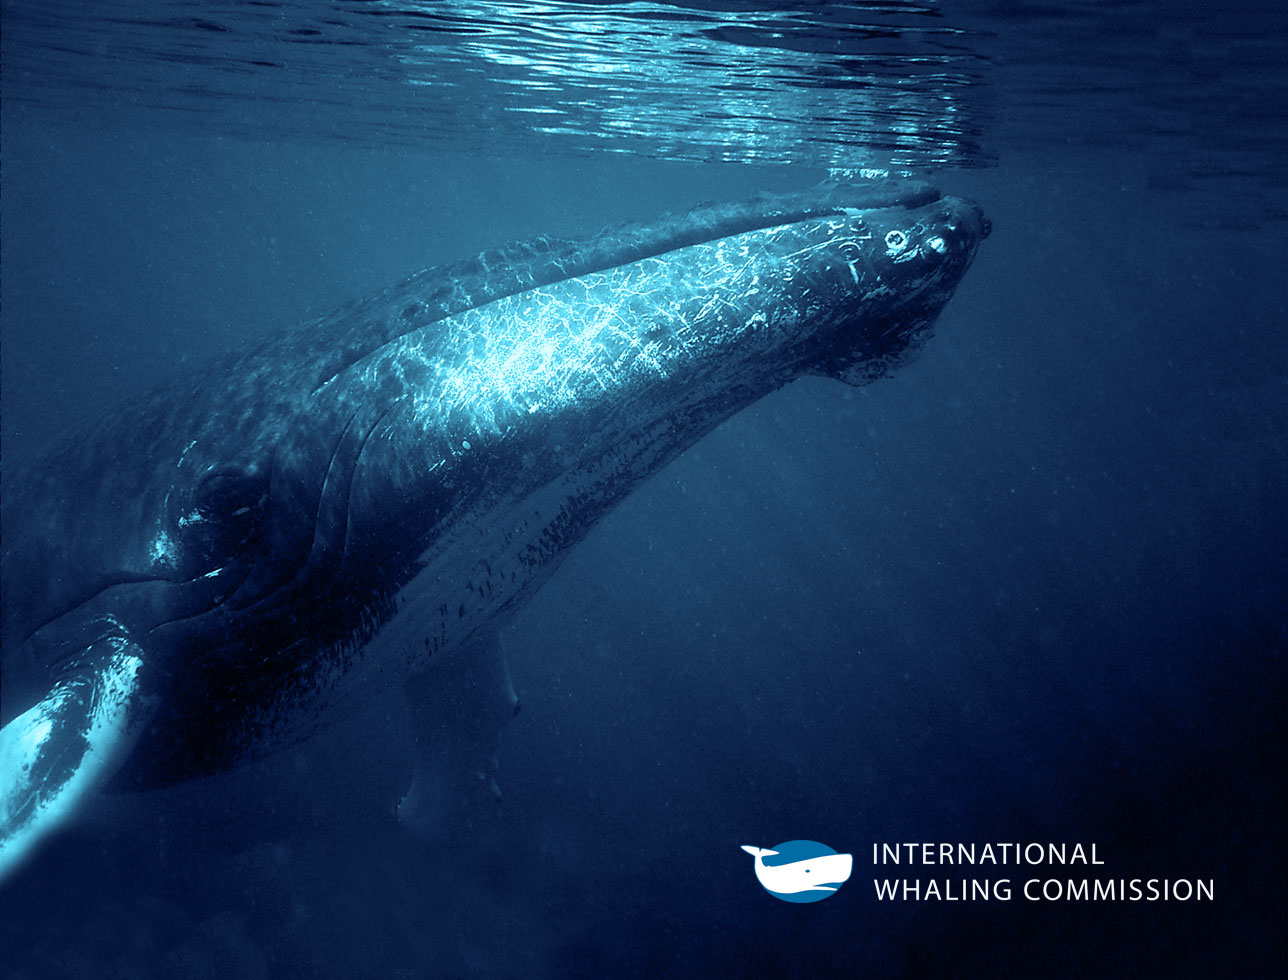 International Whaling Commission website development